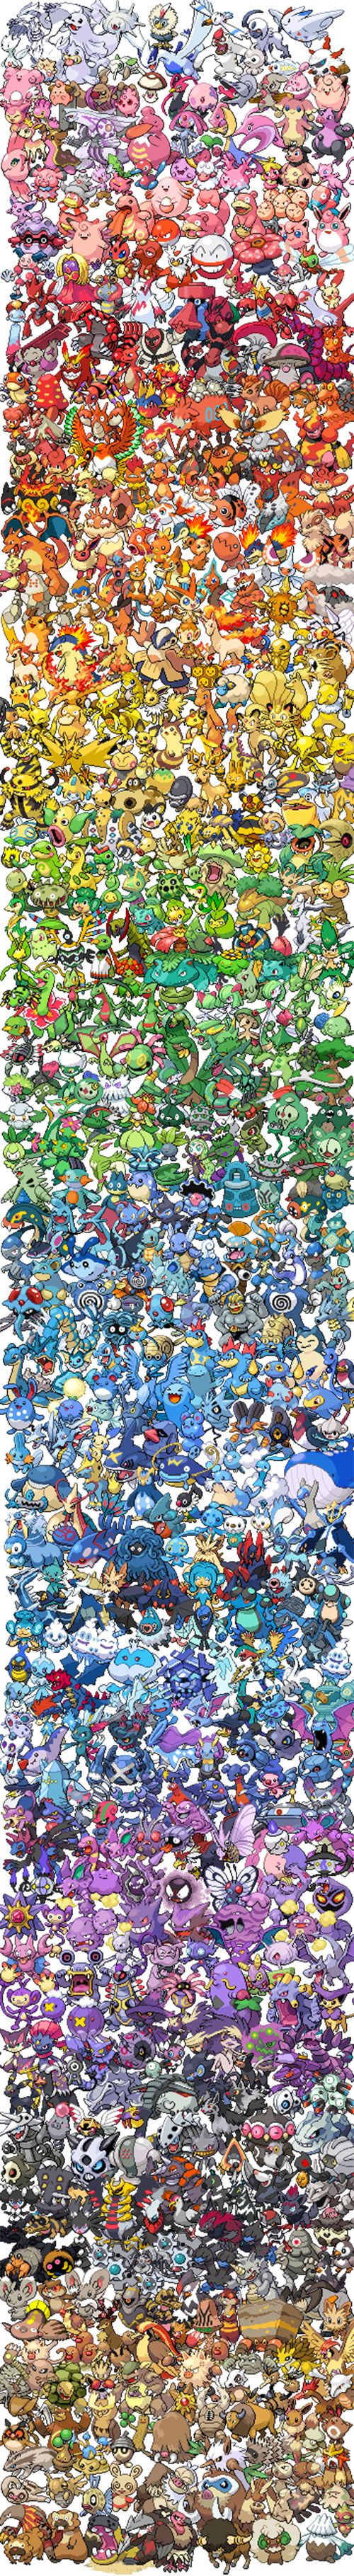 When I first saw this a saw my favorite Pokémon ever first (spheal) try and find your favorites!!